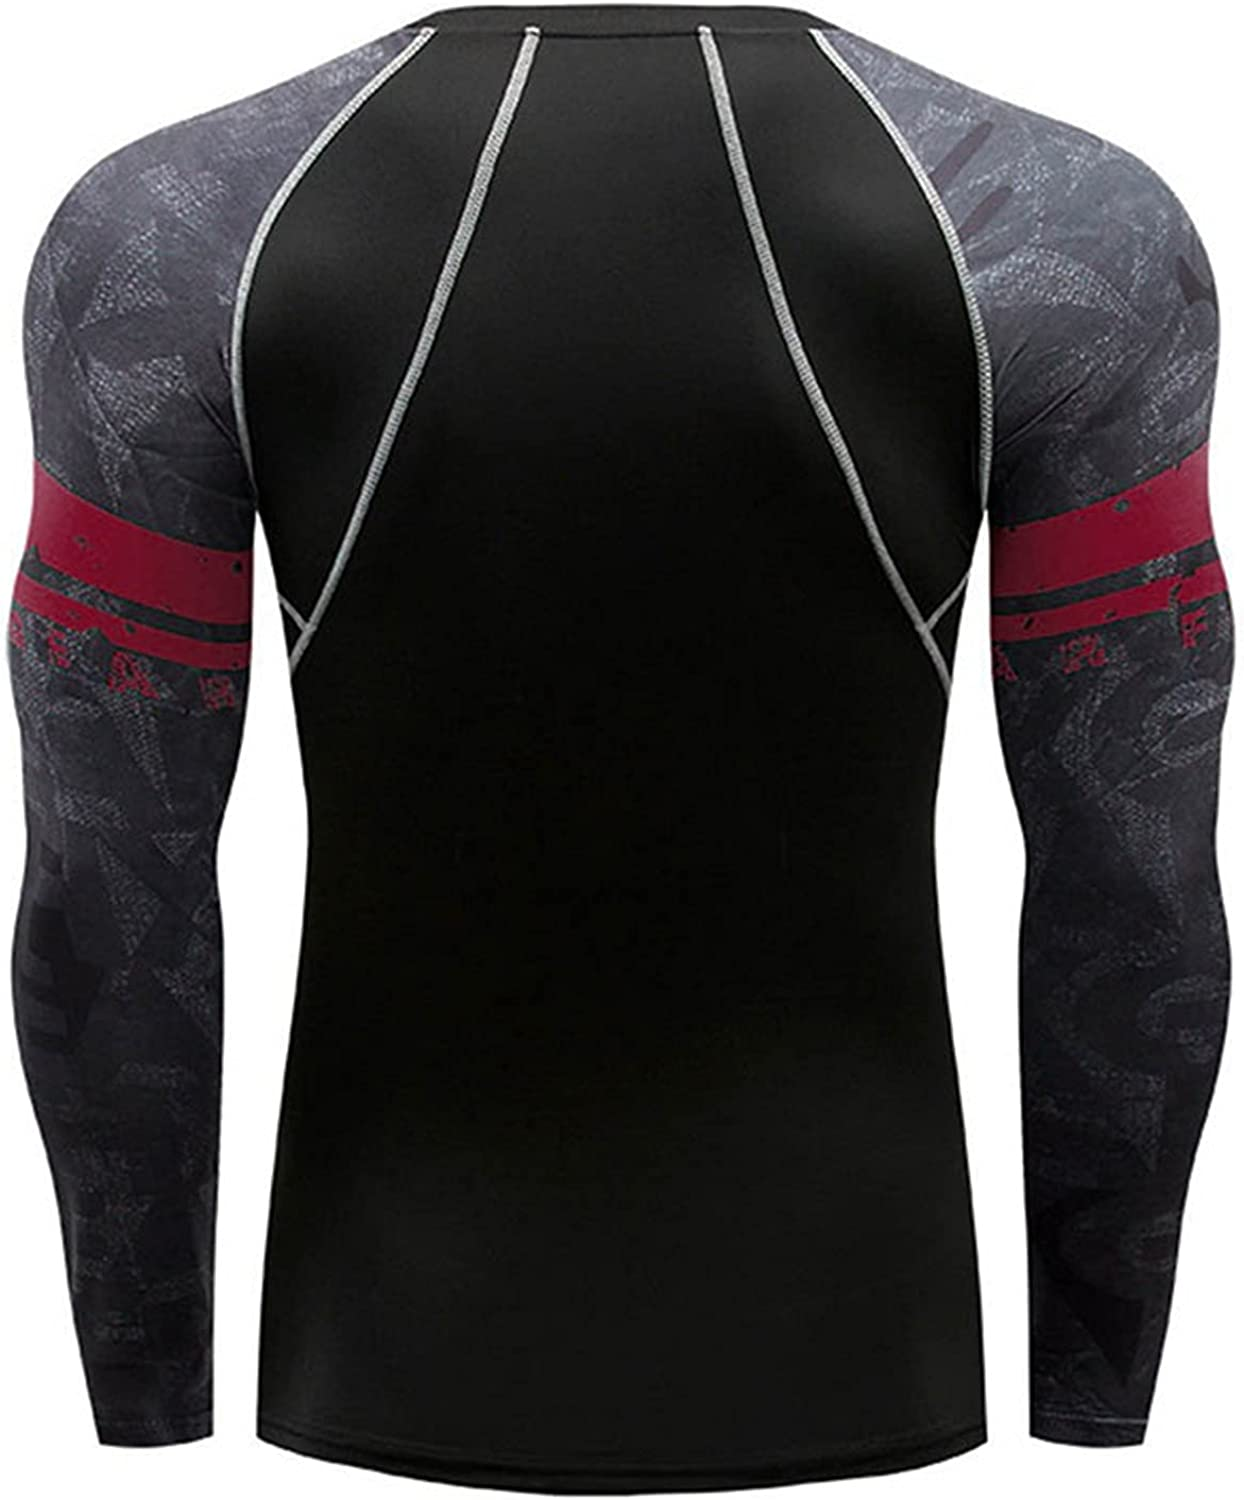 Men's New Muscle Gym Workout Tops Fashion Patchwork Long Sleeve Fitness Training Athletic Shirts